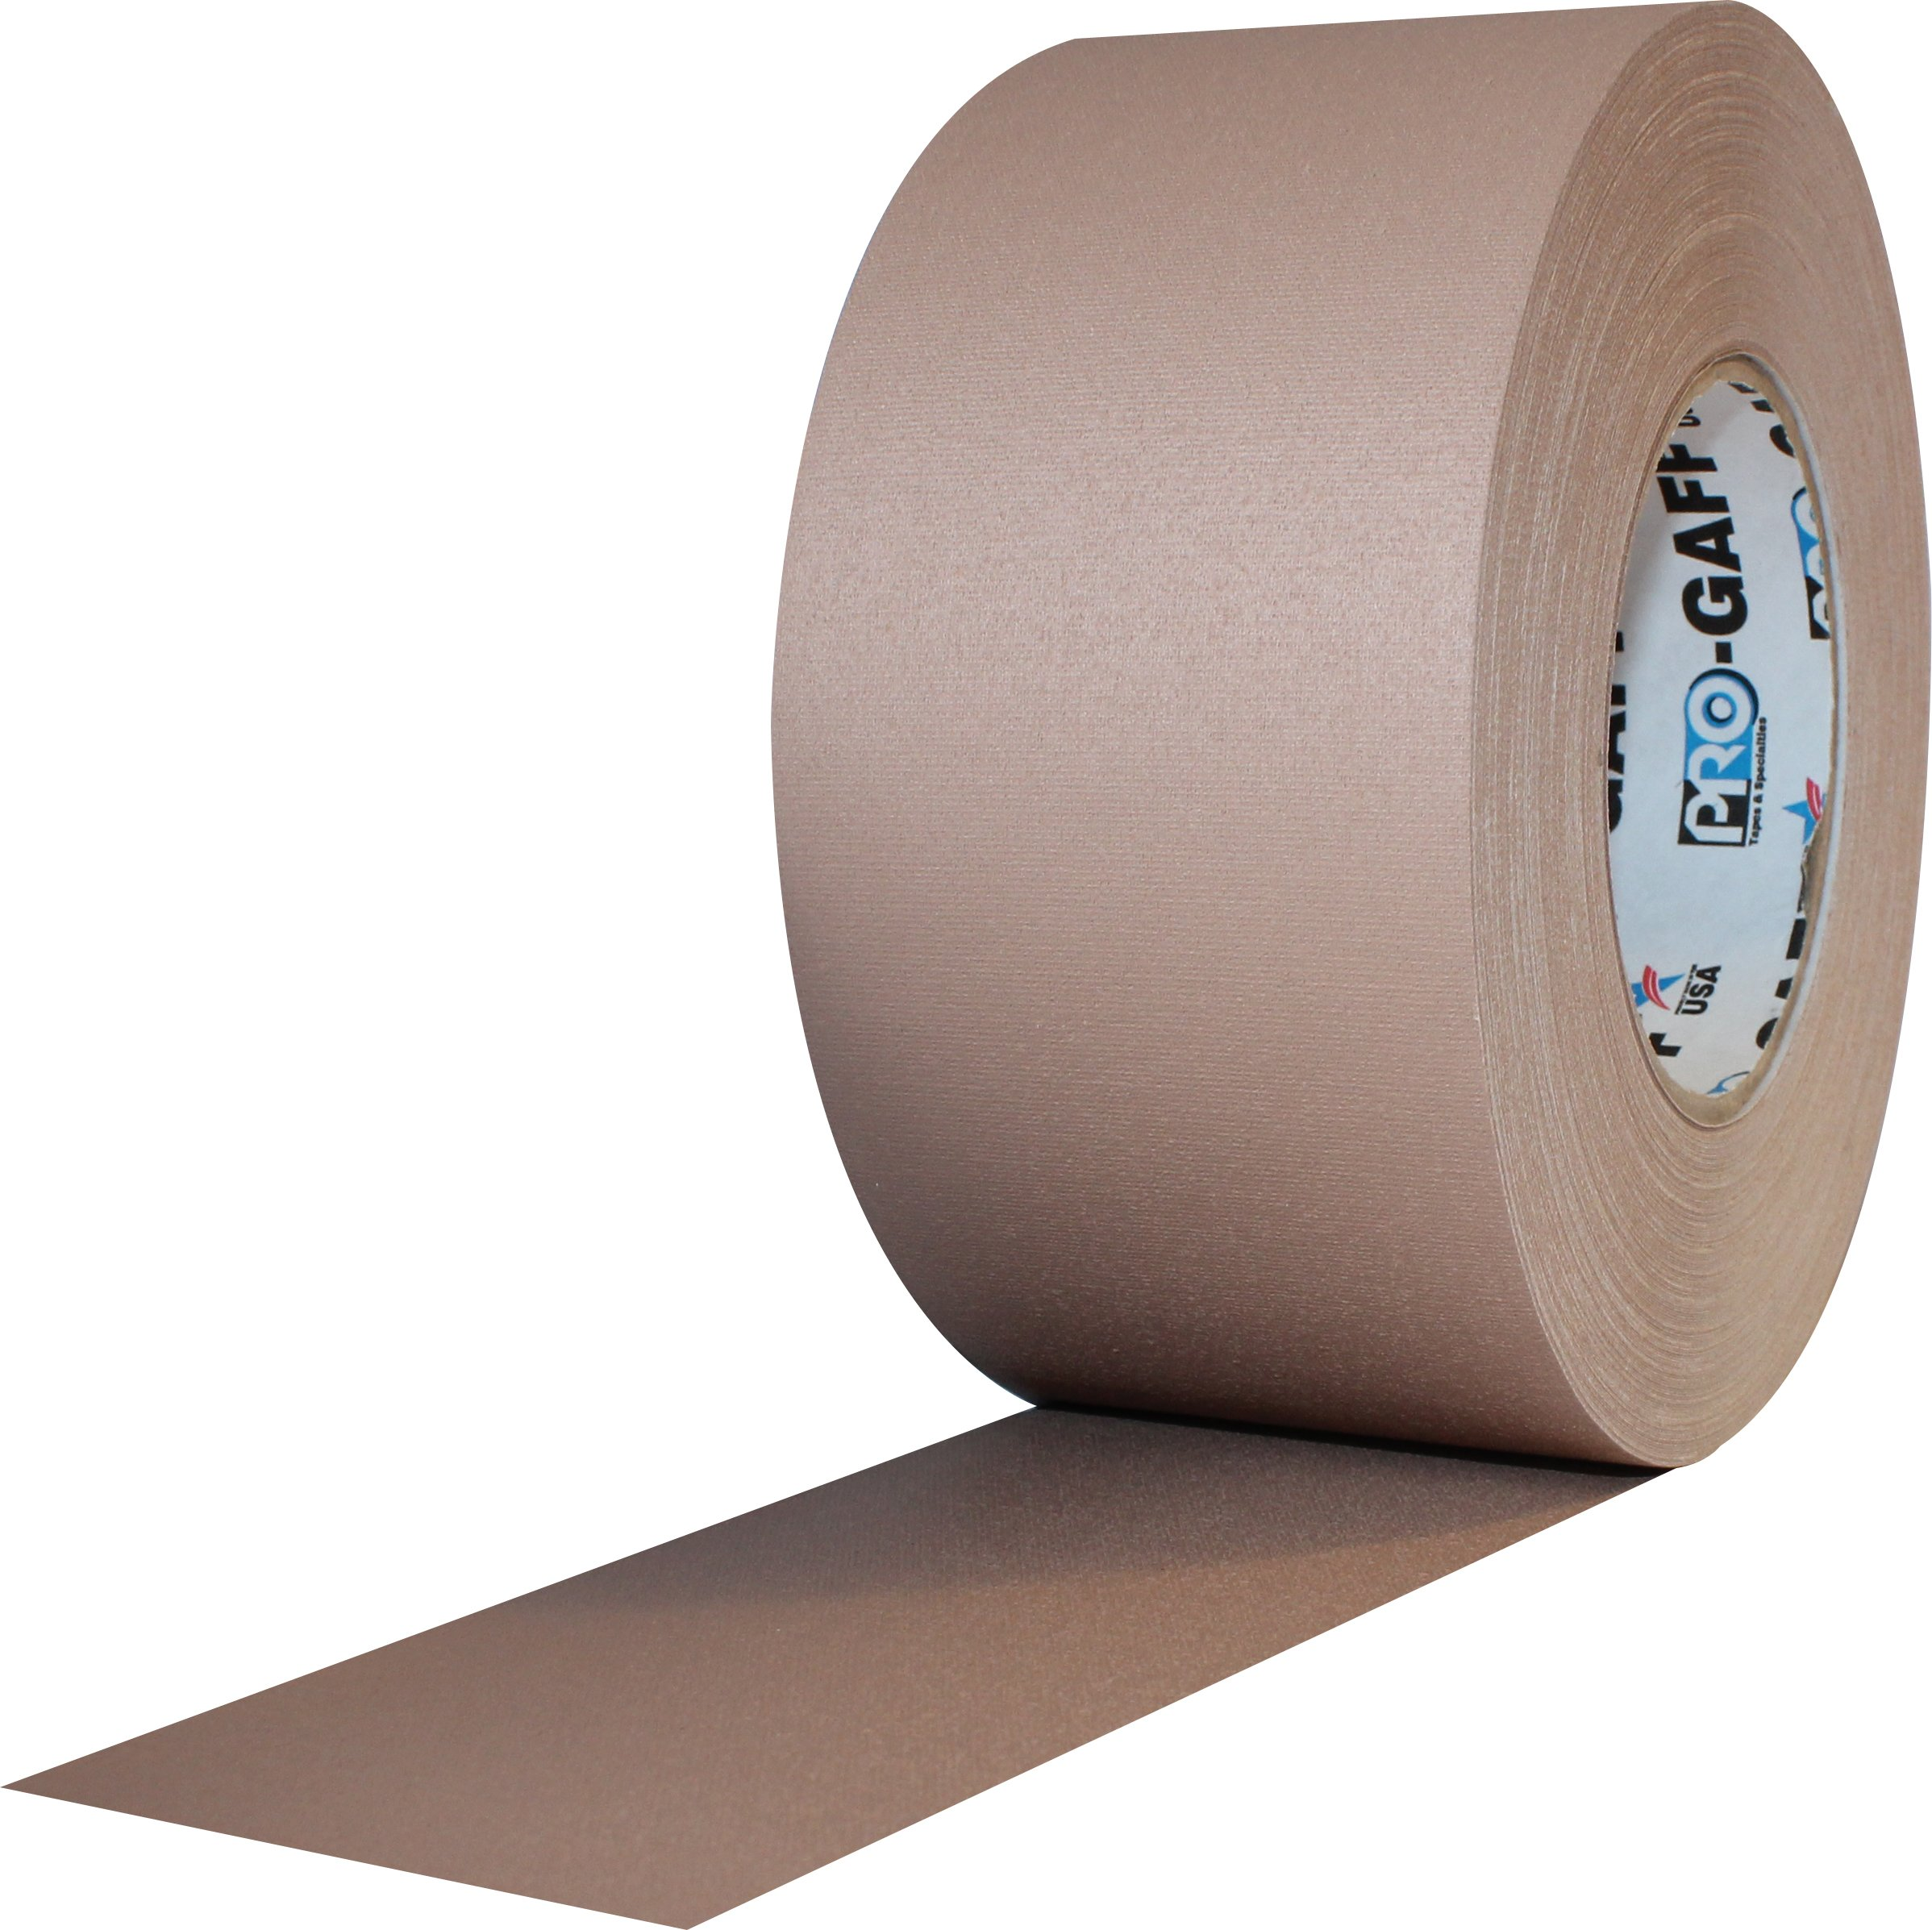 """ProTapes Pro Gaff Premium Matte Cloth Gaffer's Tape With Rubber Adhesive, 11 mils Thick, 55 yds Length, 3"""" Width, Tan (Pack of 1)"""